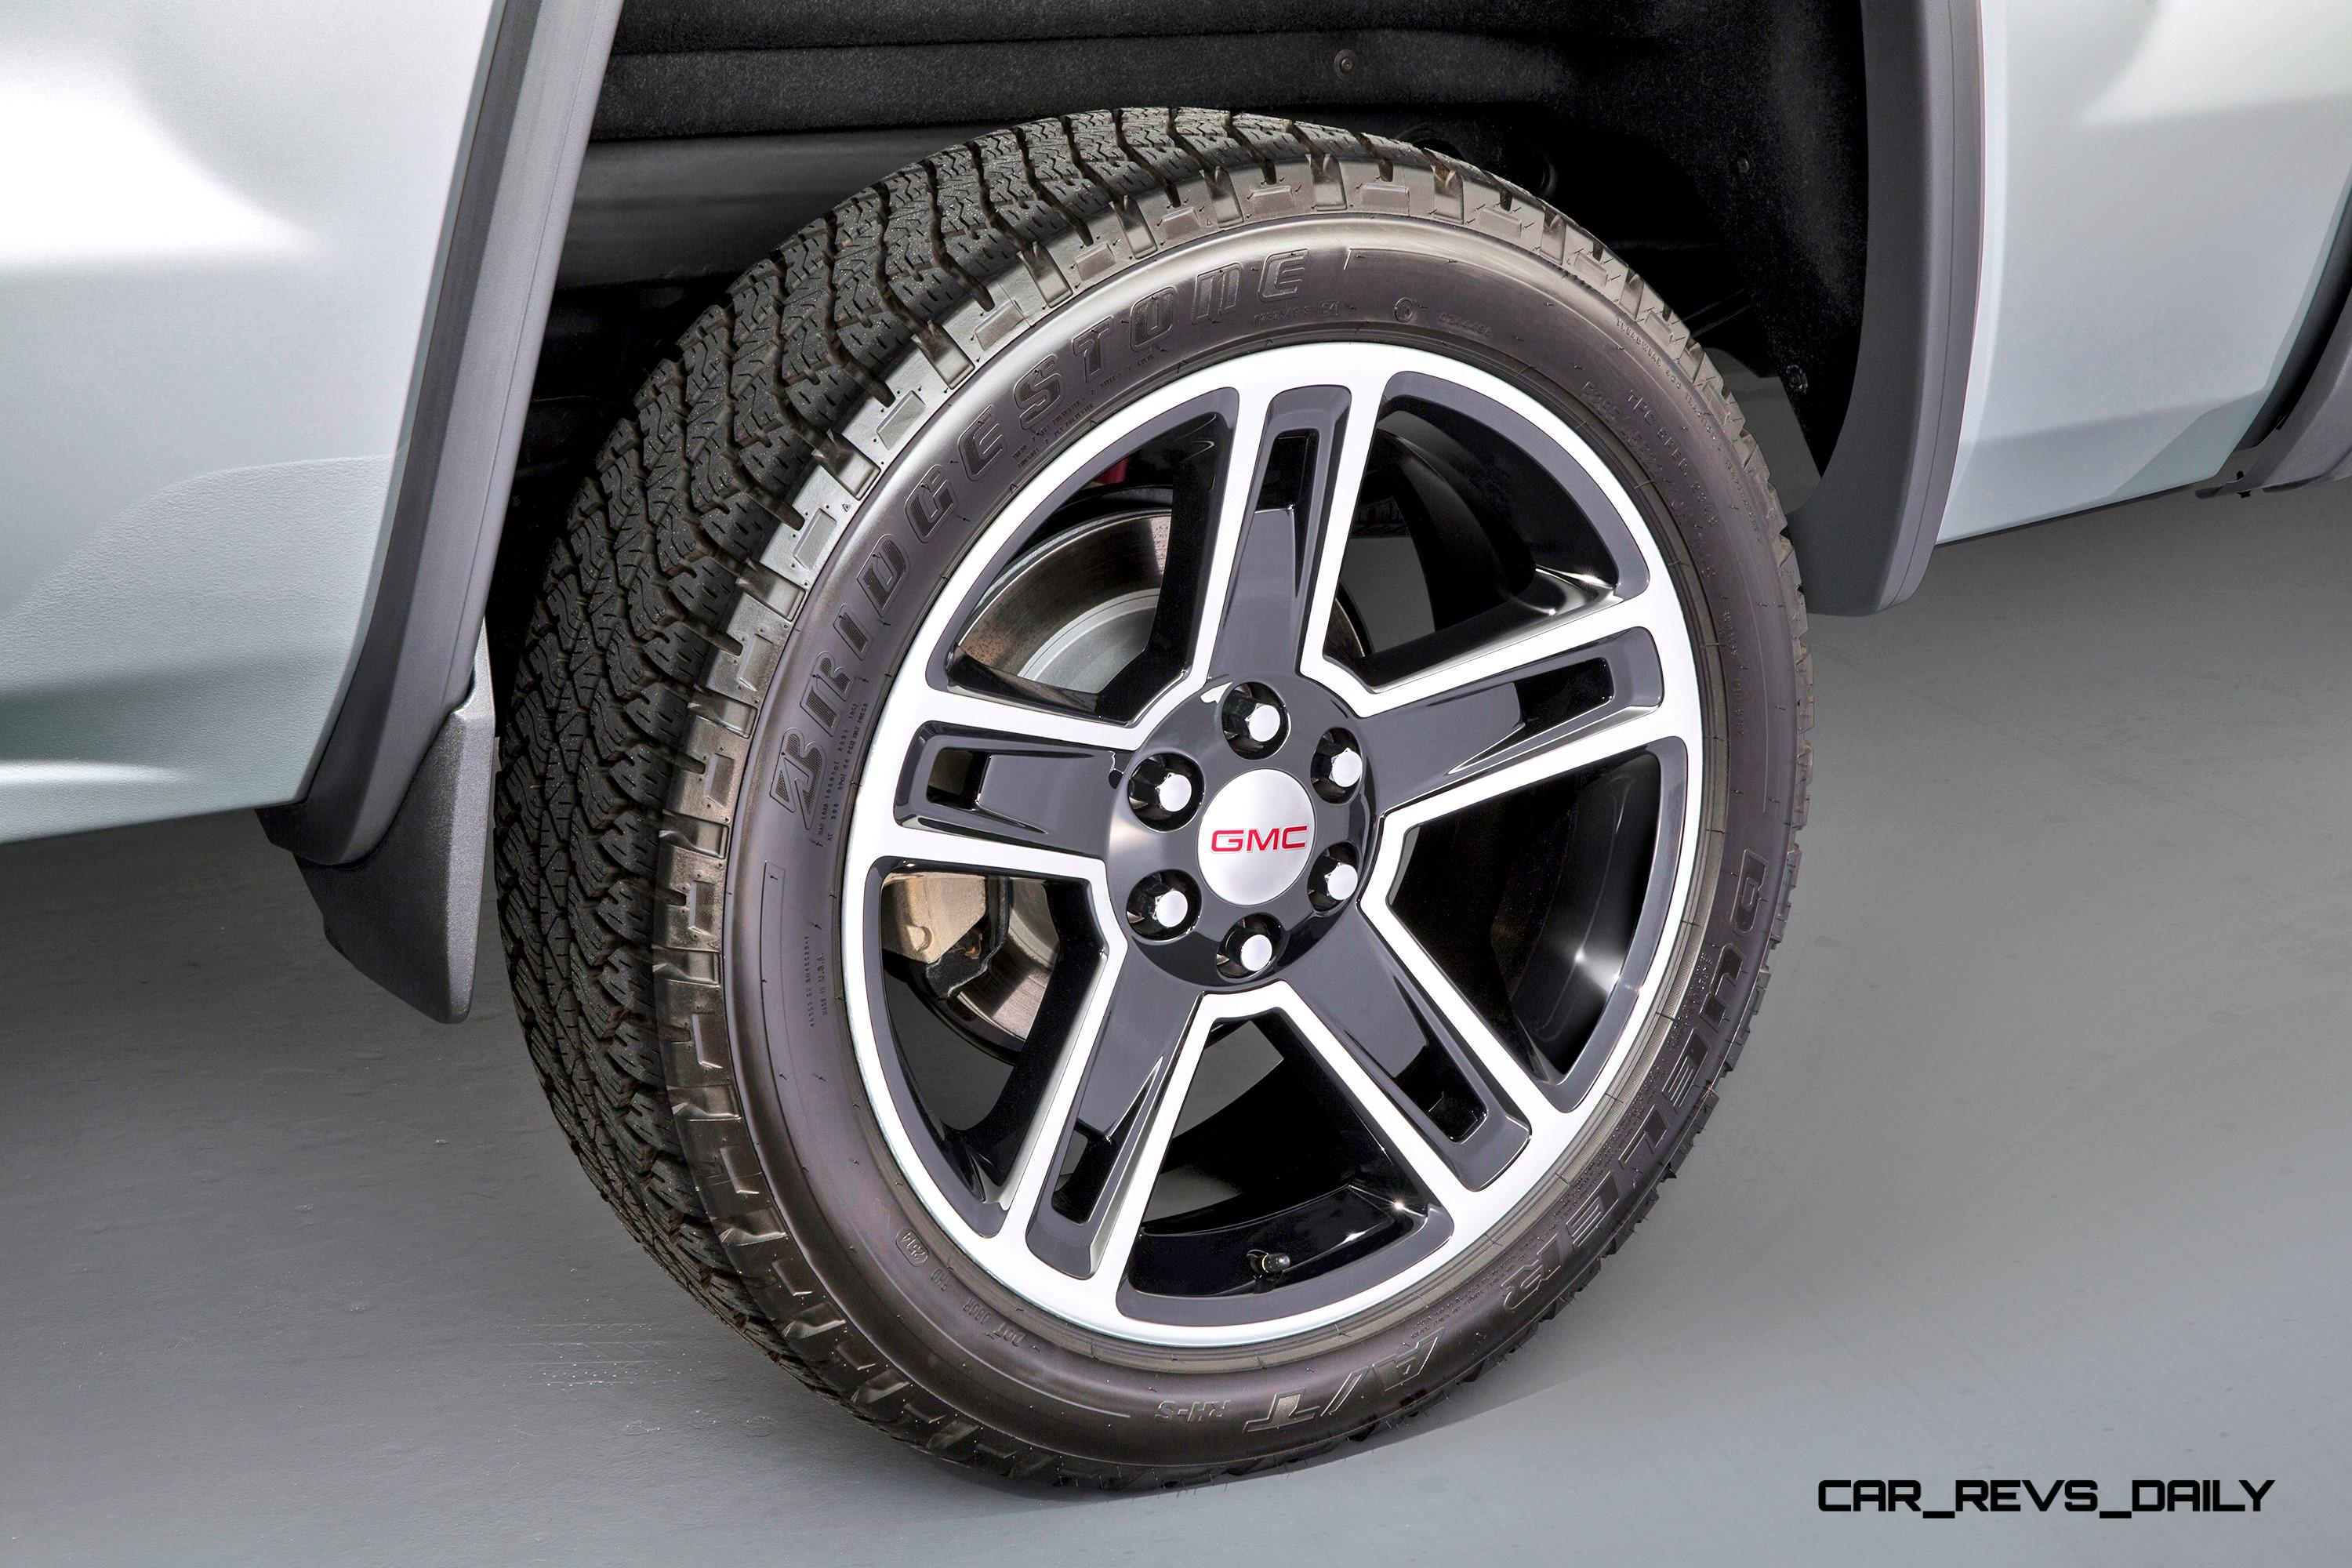 2015 Gmc Sierra Elevation And Carbon Editions Bring Top Flight Leds And Stylish Black Wheels Car Revs Daily Com